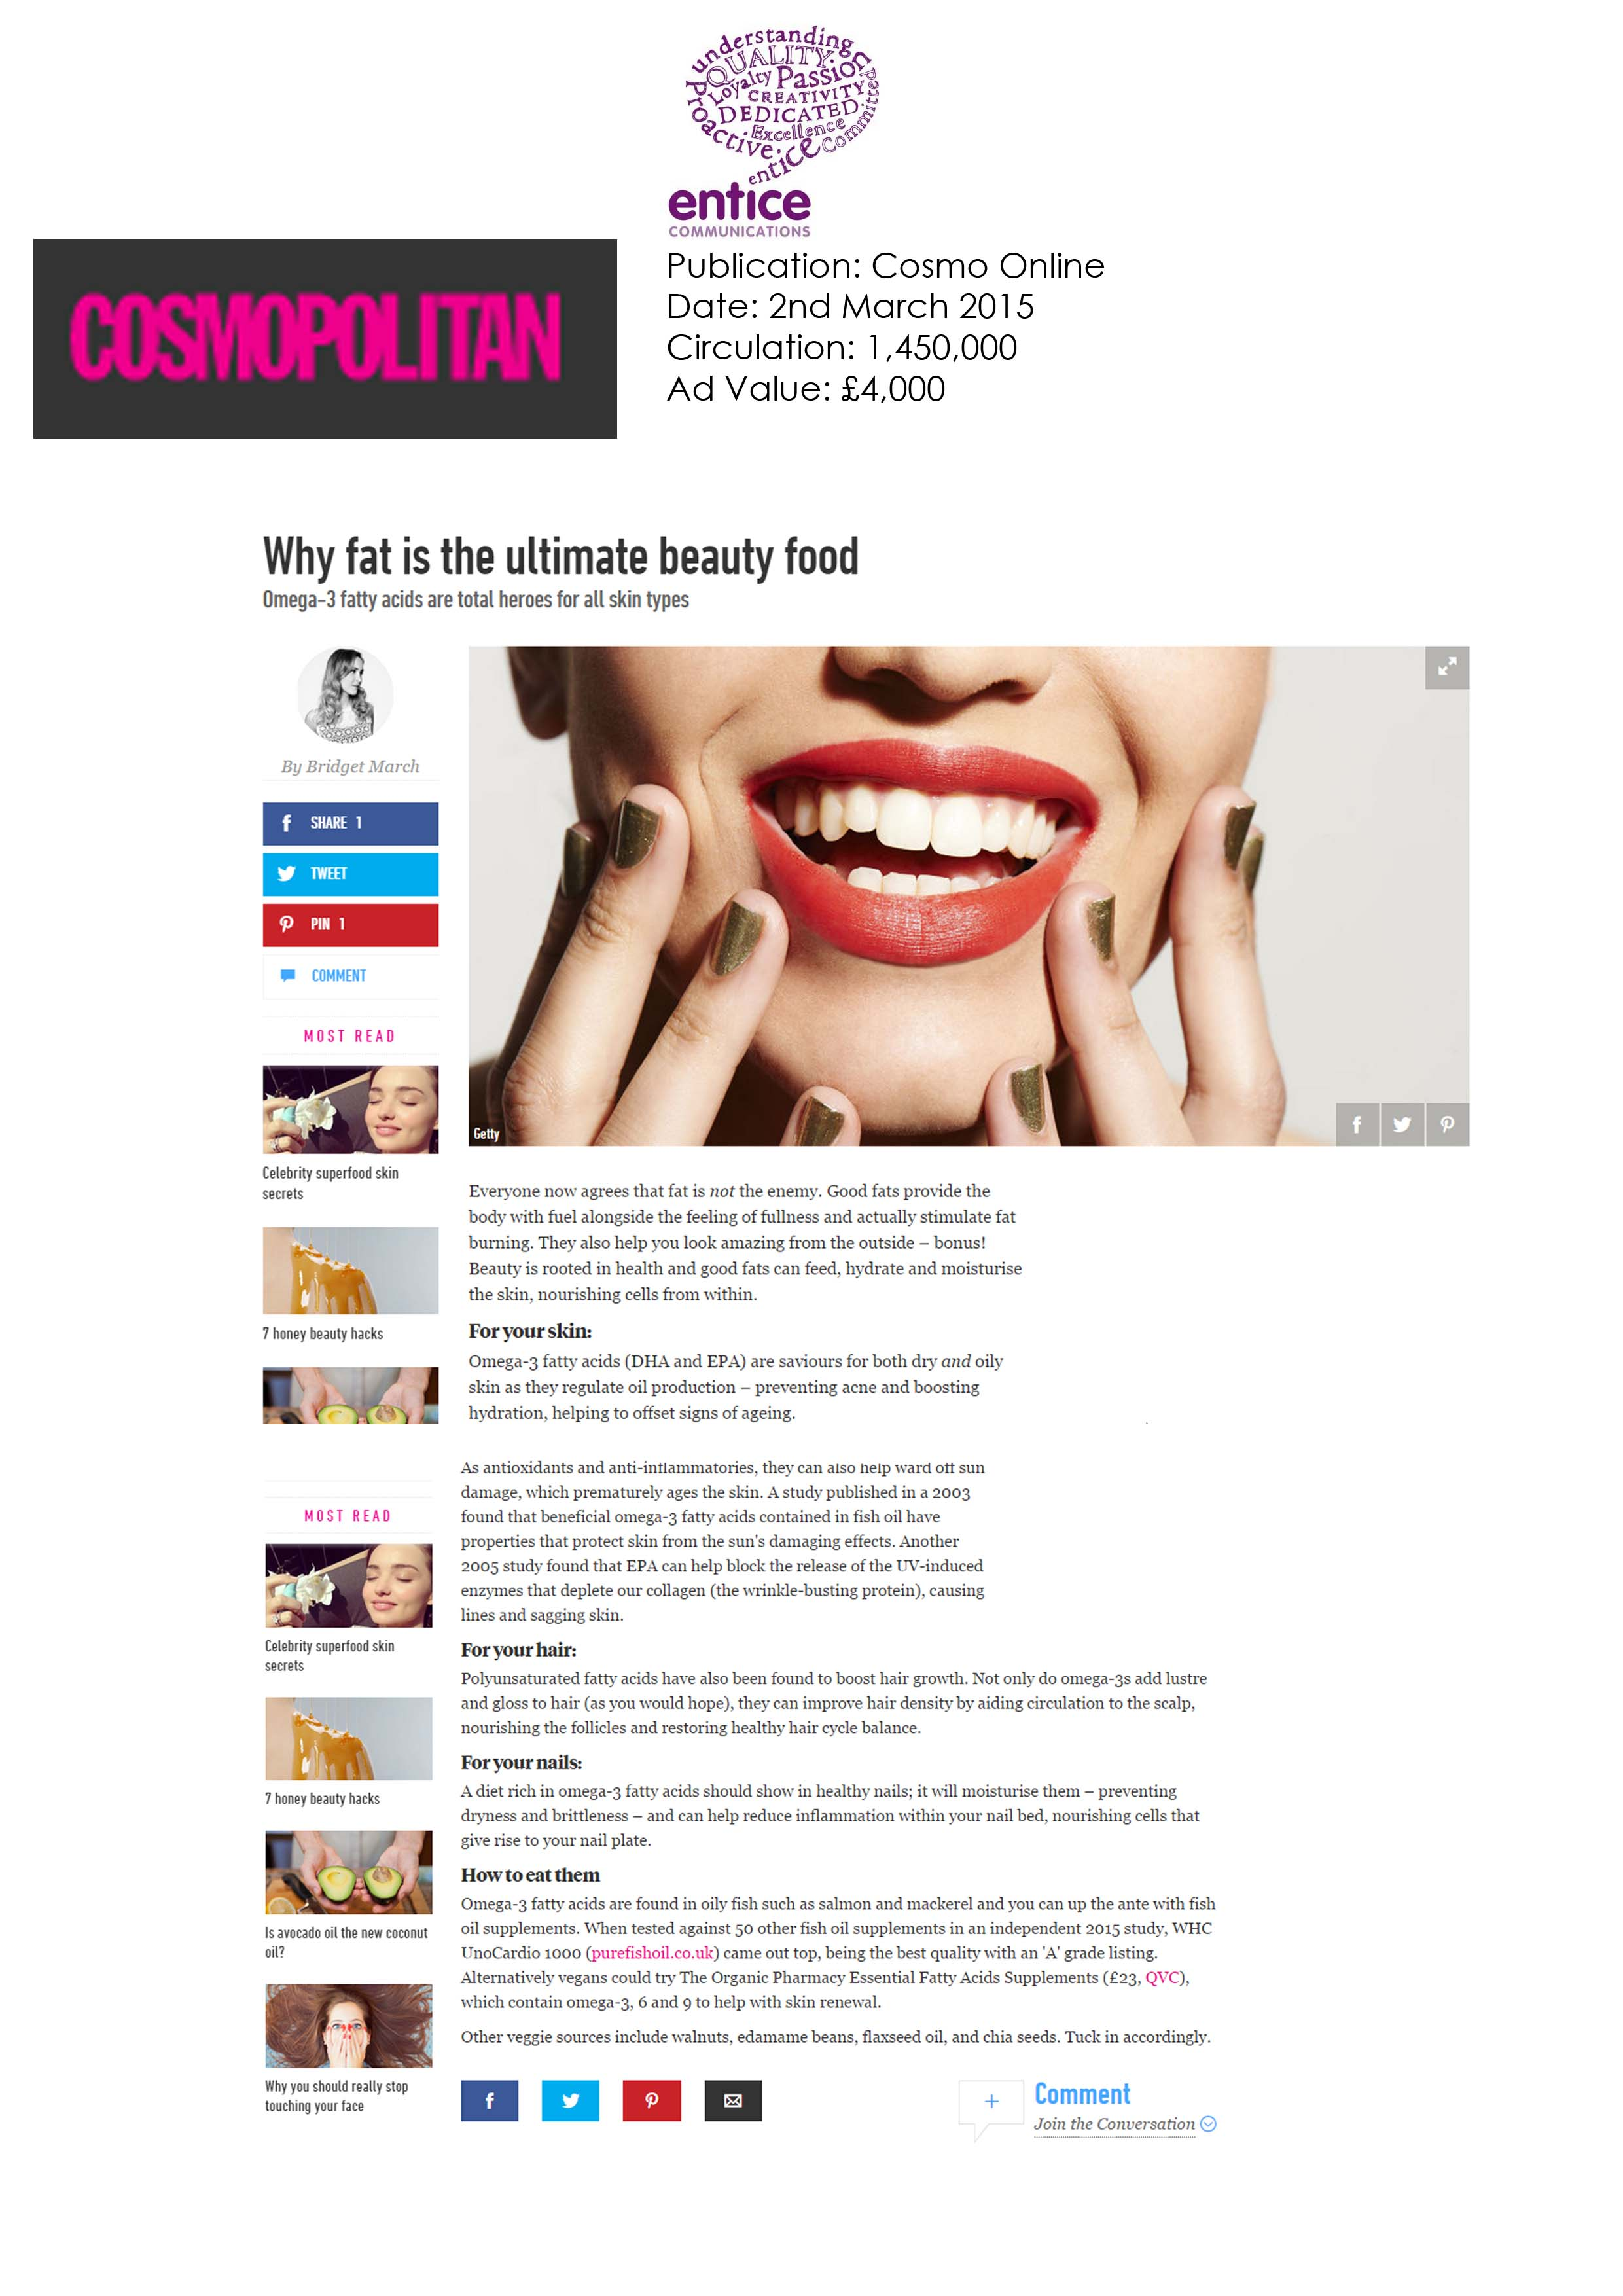 Cosmo Online 2nd March 2015 (5)